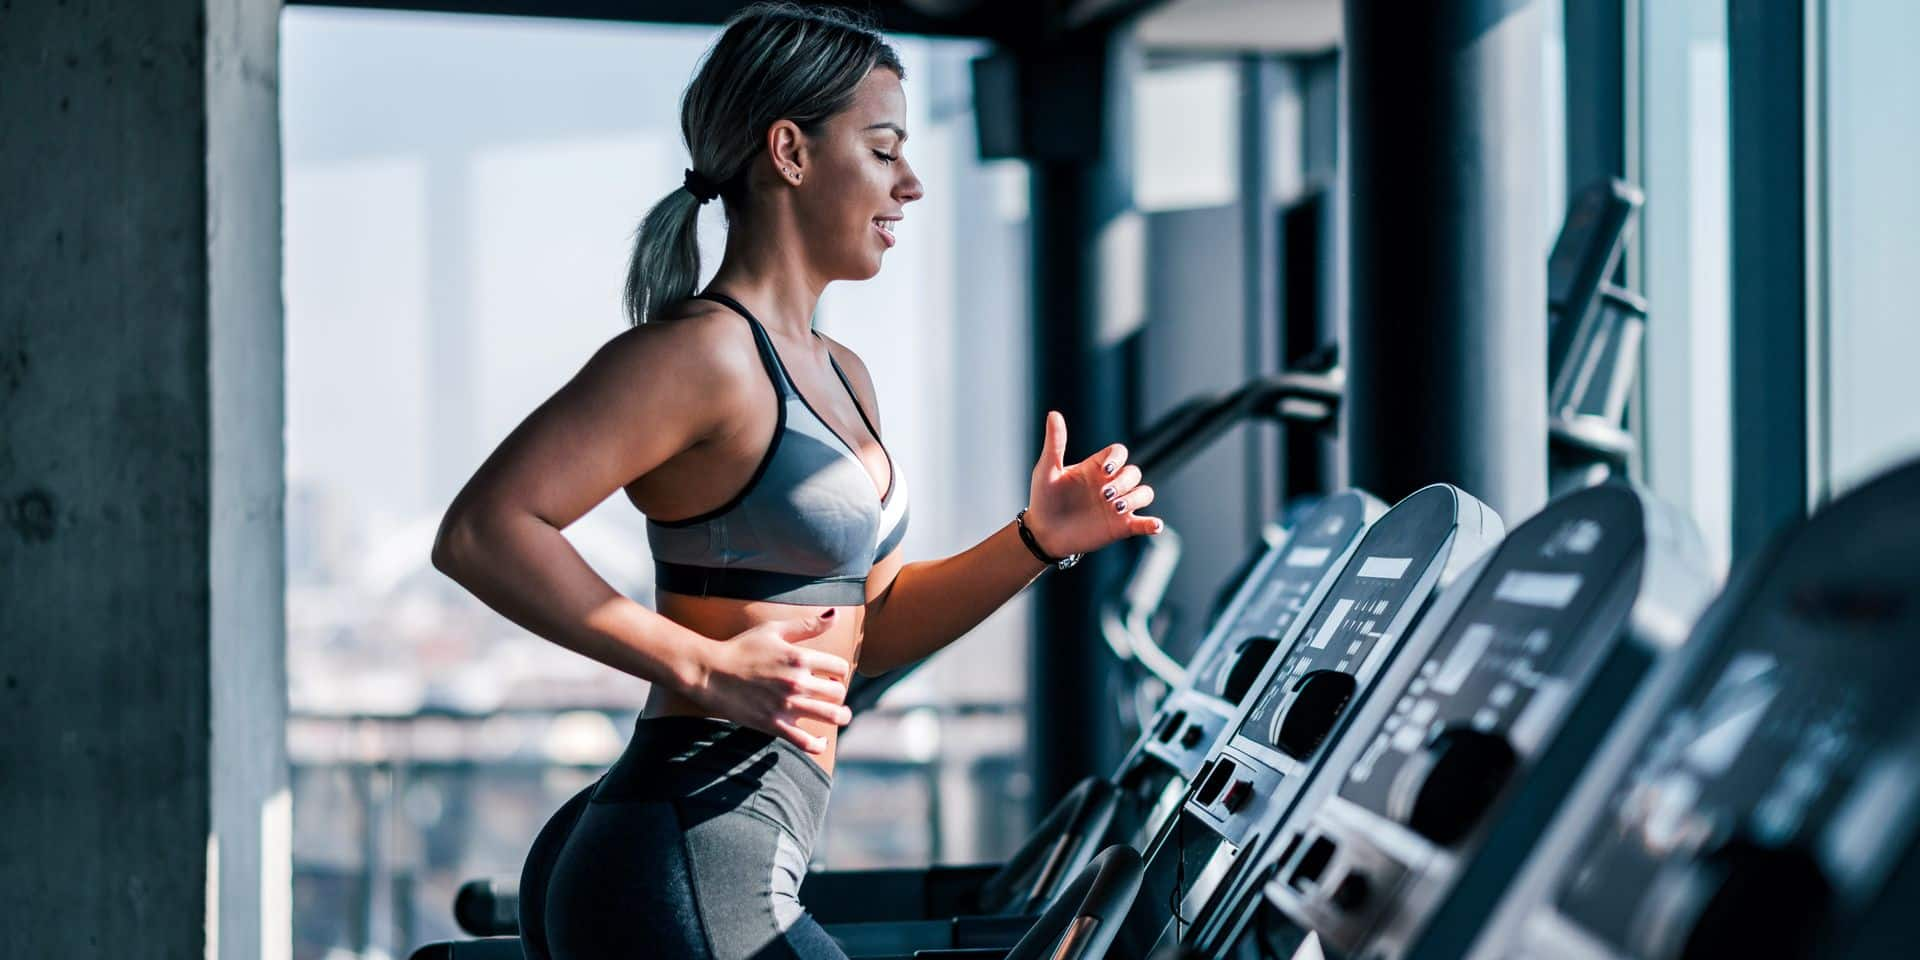 Side,View,Of,Beautiful,Muscular,Woman,Running,On,Treadmill.